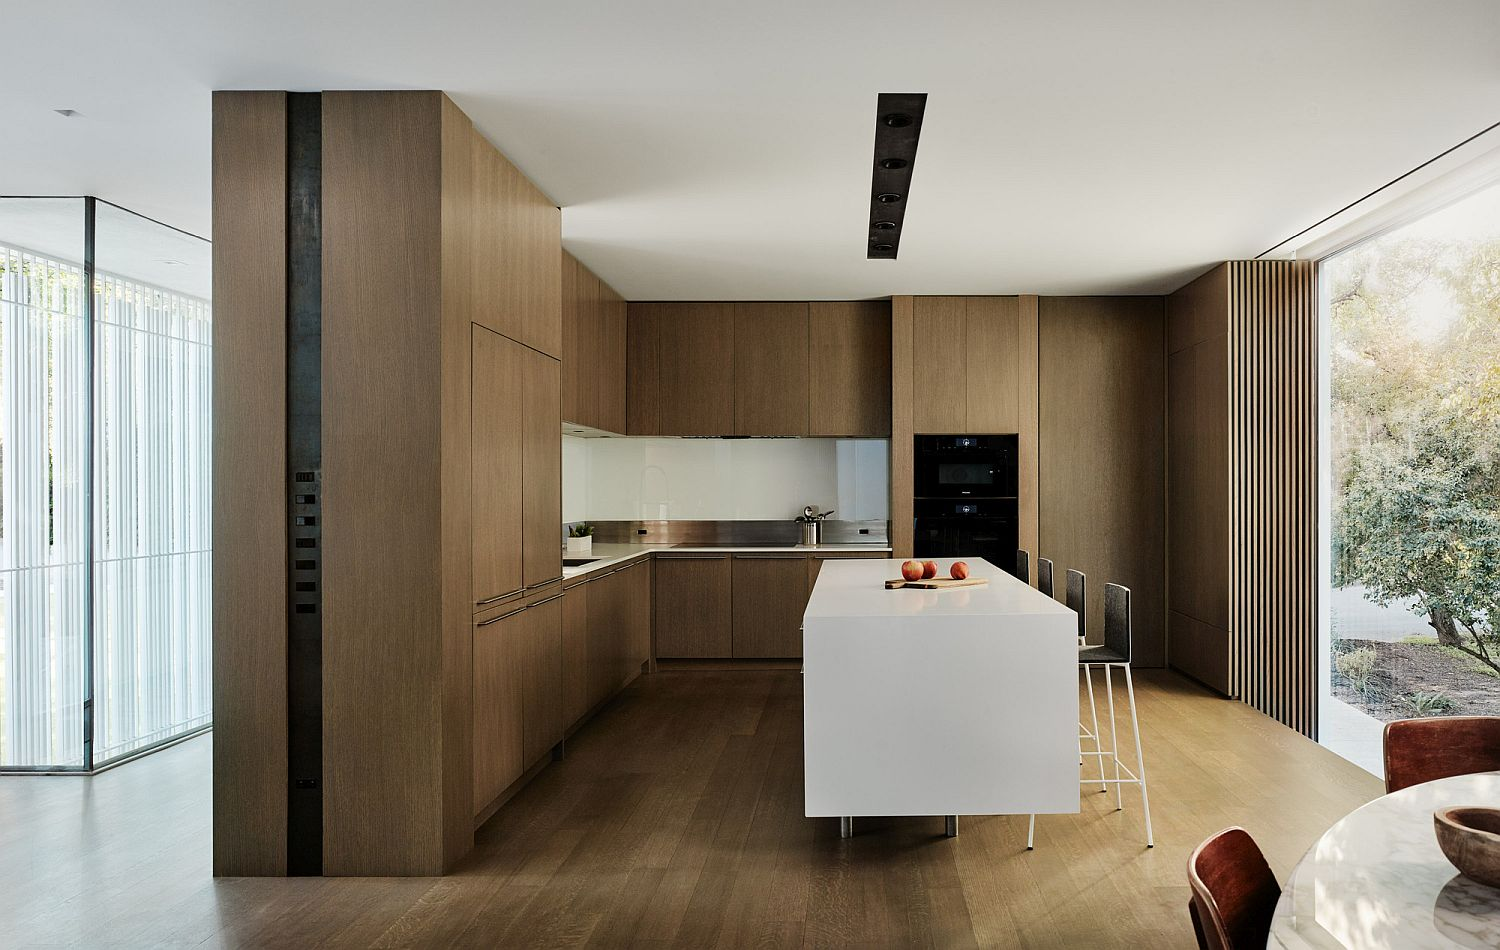 Spacious-kitchen-with-wooden-cabinets-white-island-and-connectivity-with-the-outdoors